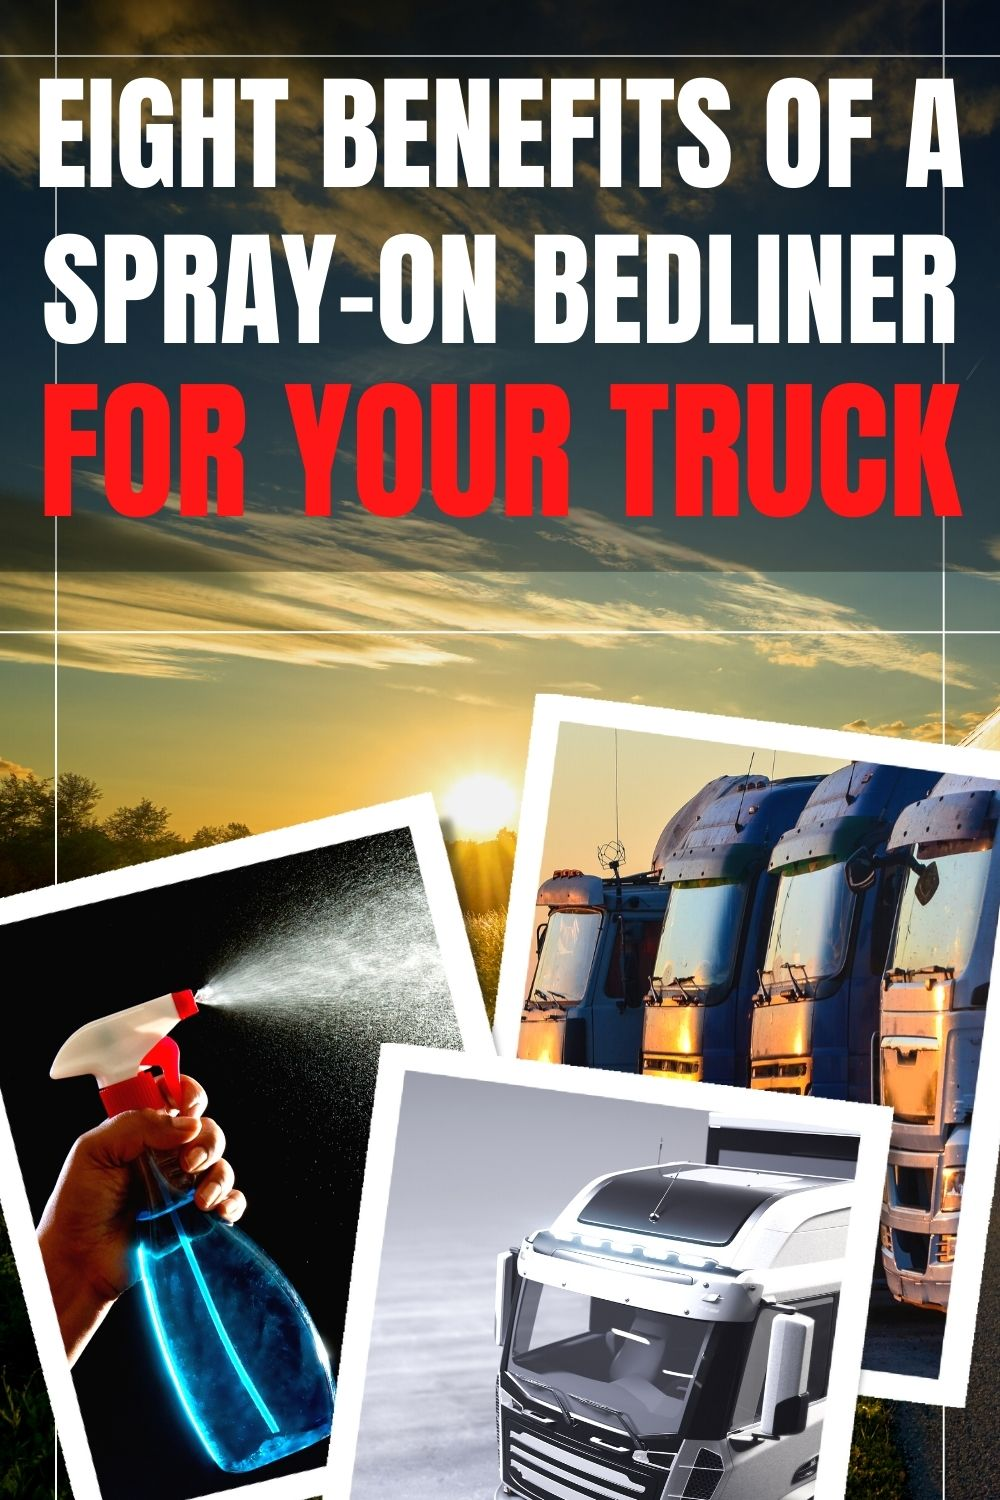 Eight Benefits of Spray on Bedliner For your Truck